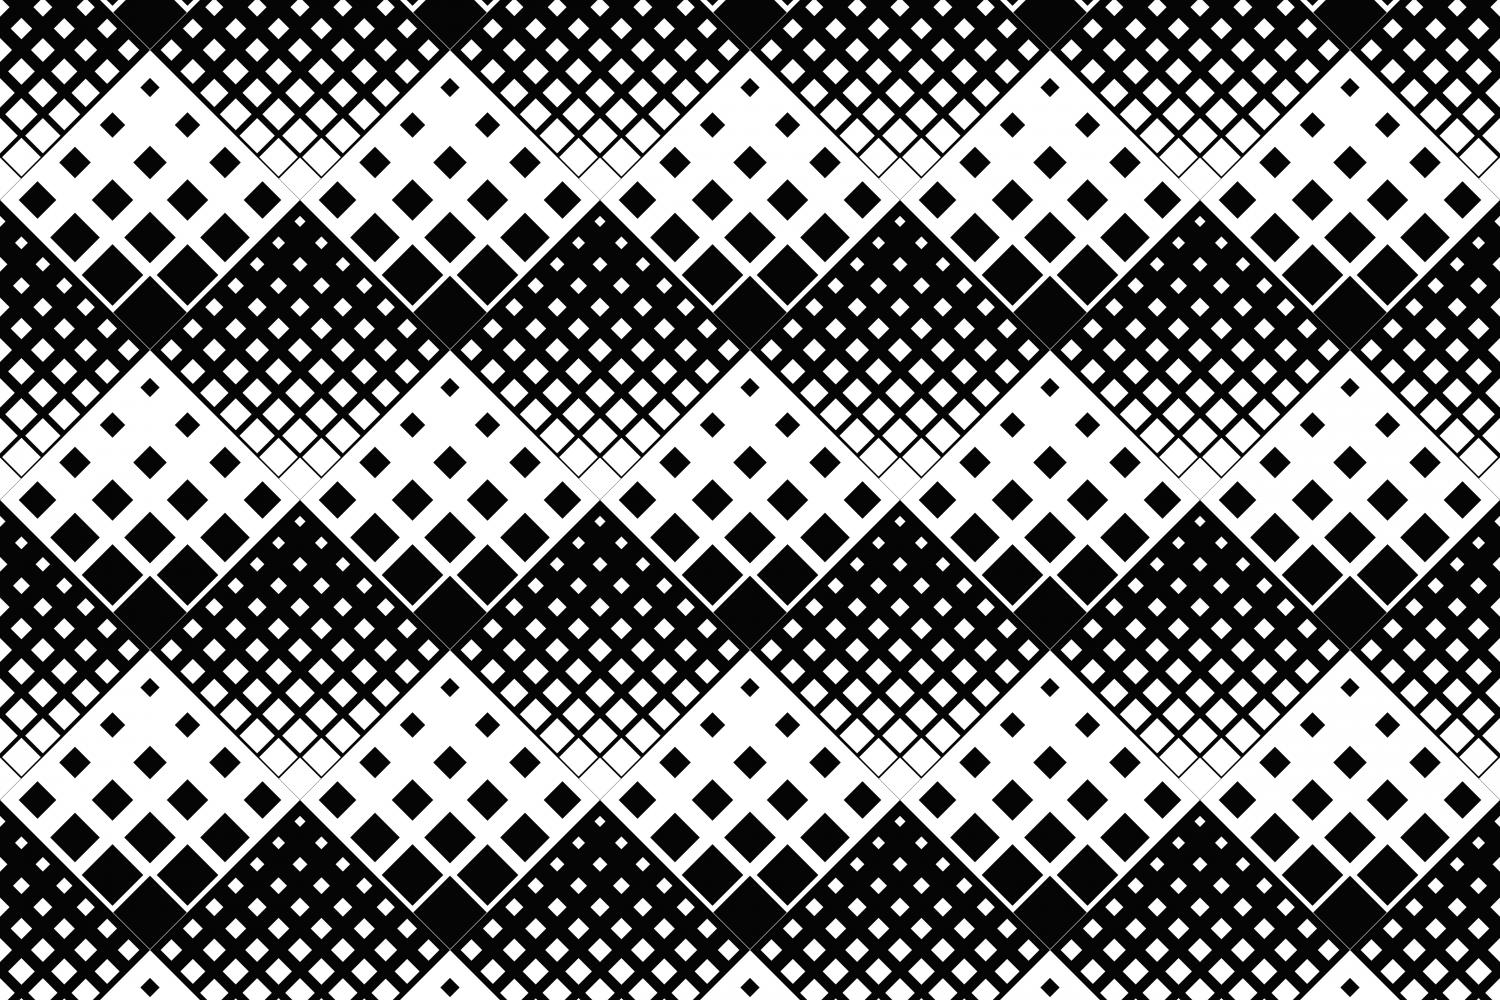 24 Seamless Square Patterns example image 17